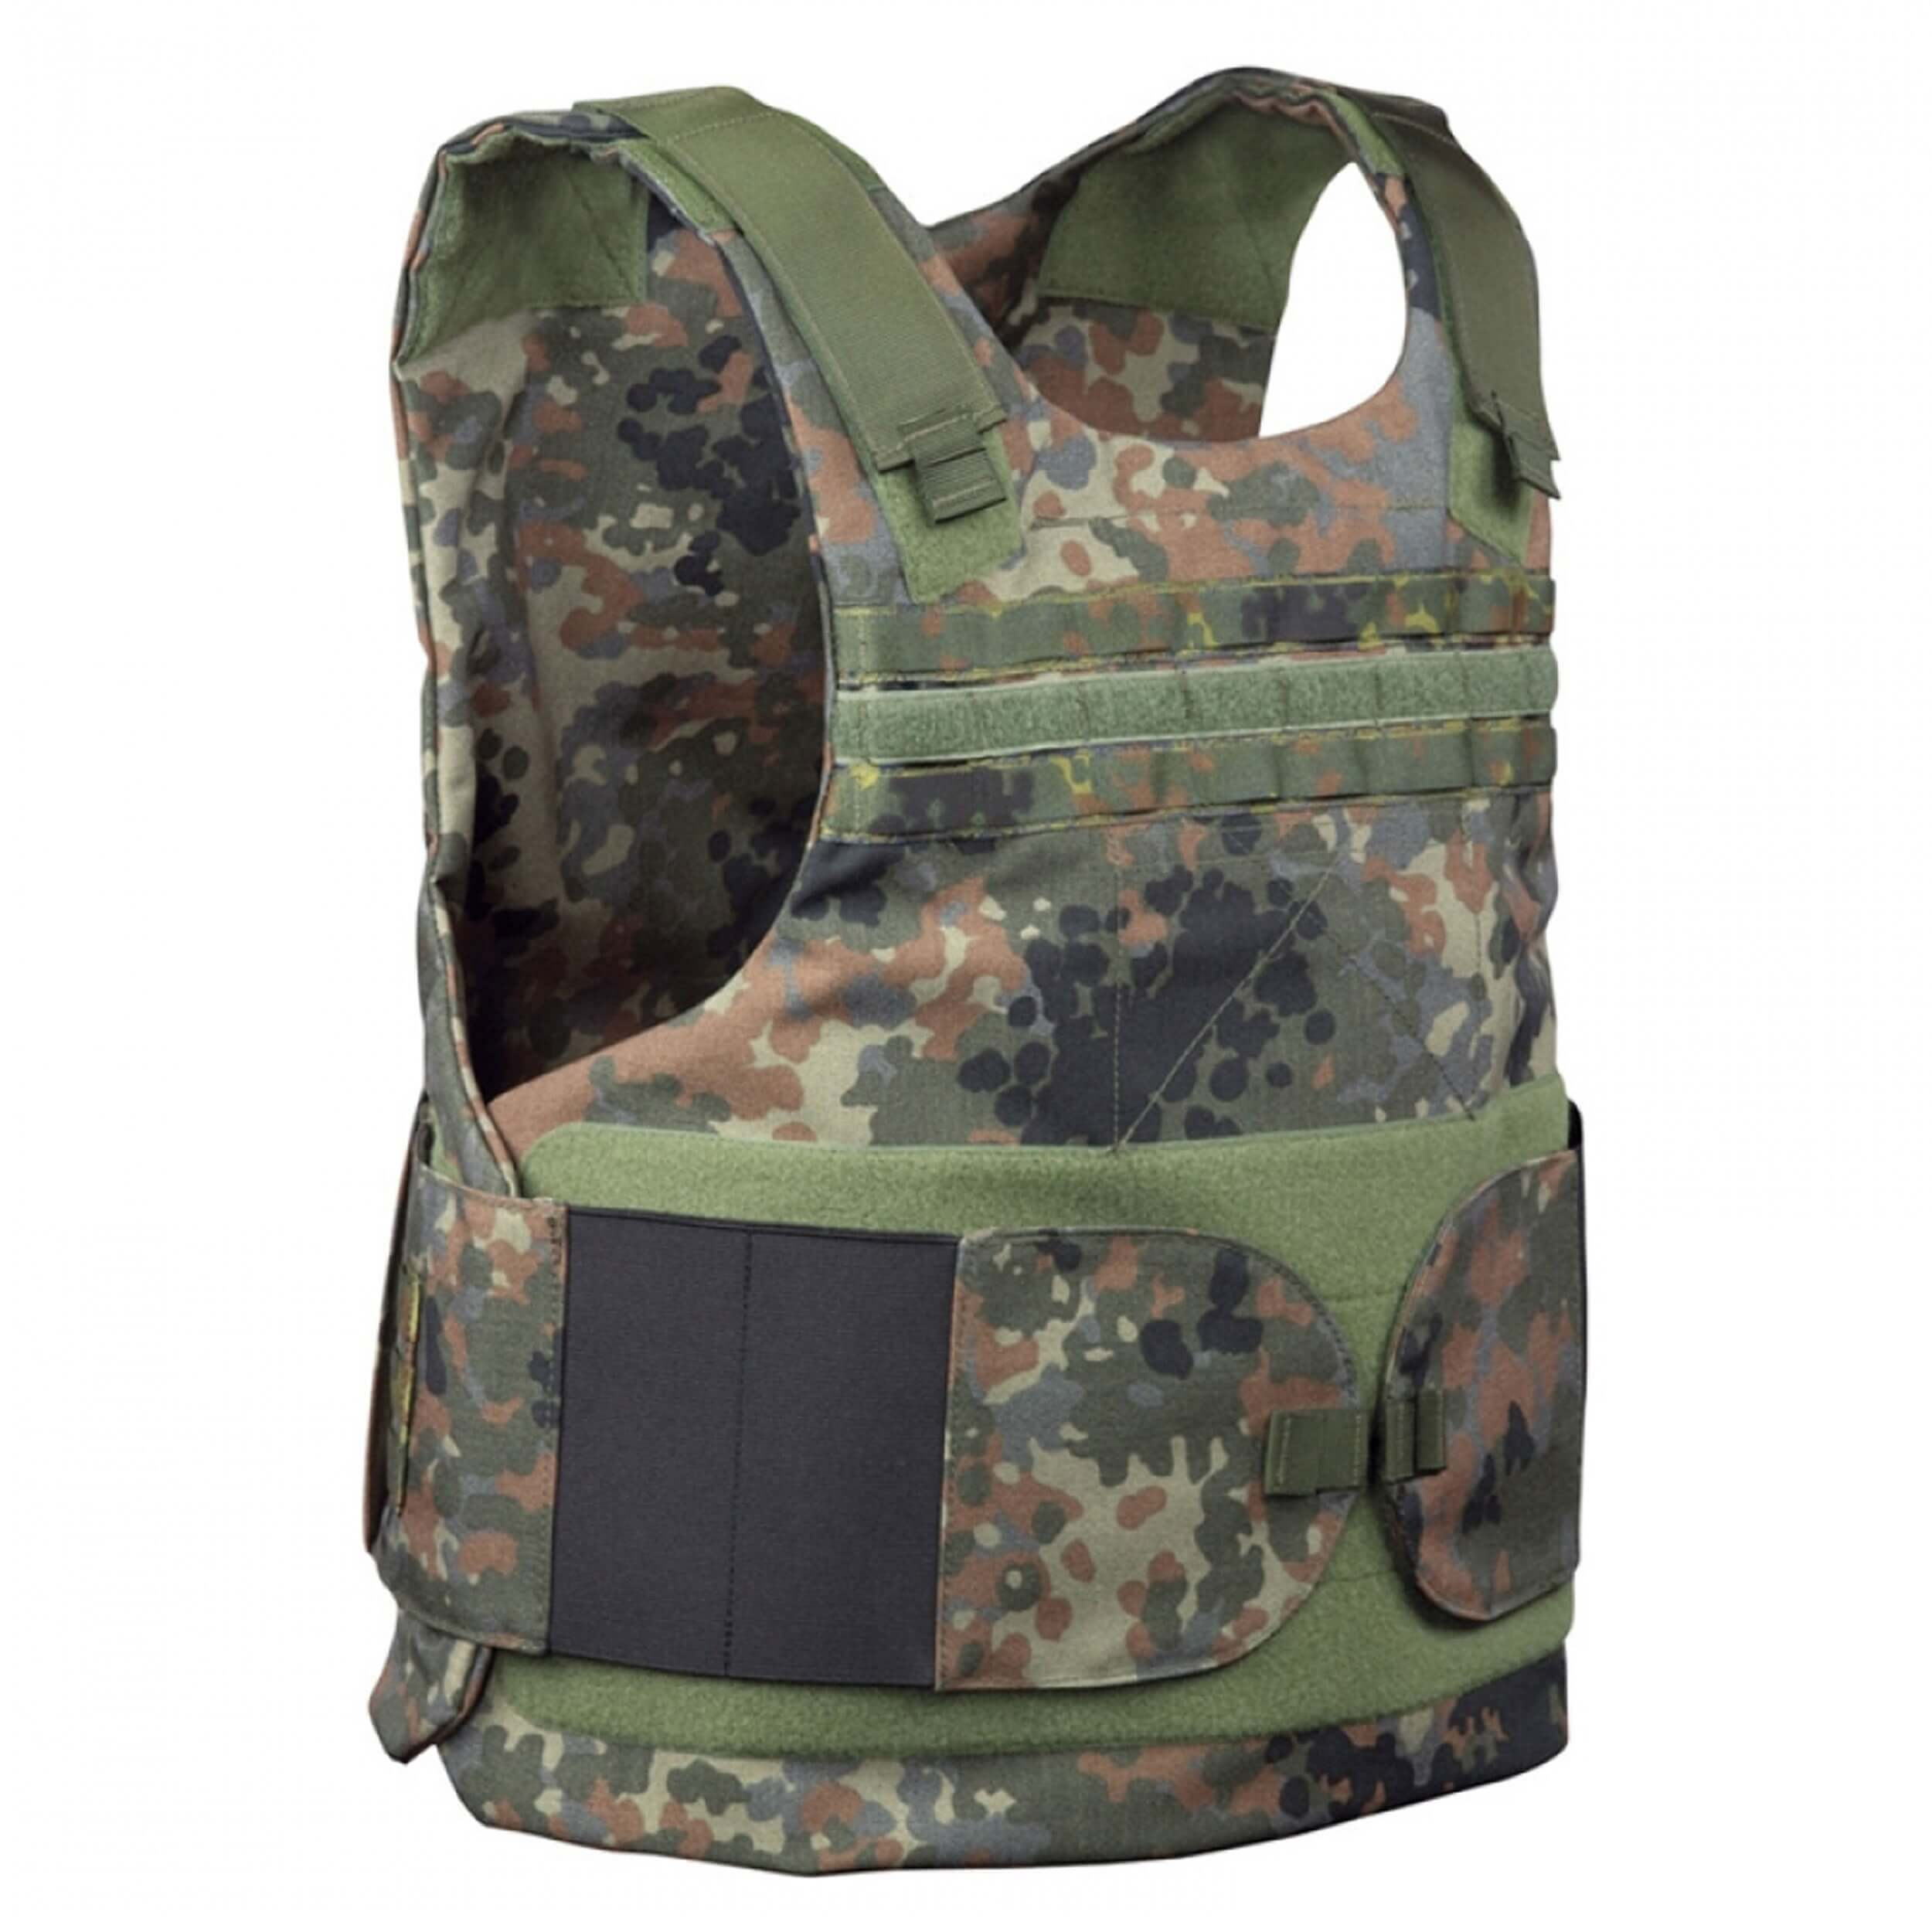 75Tactical OMEGA 4 flecktarn